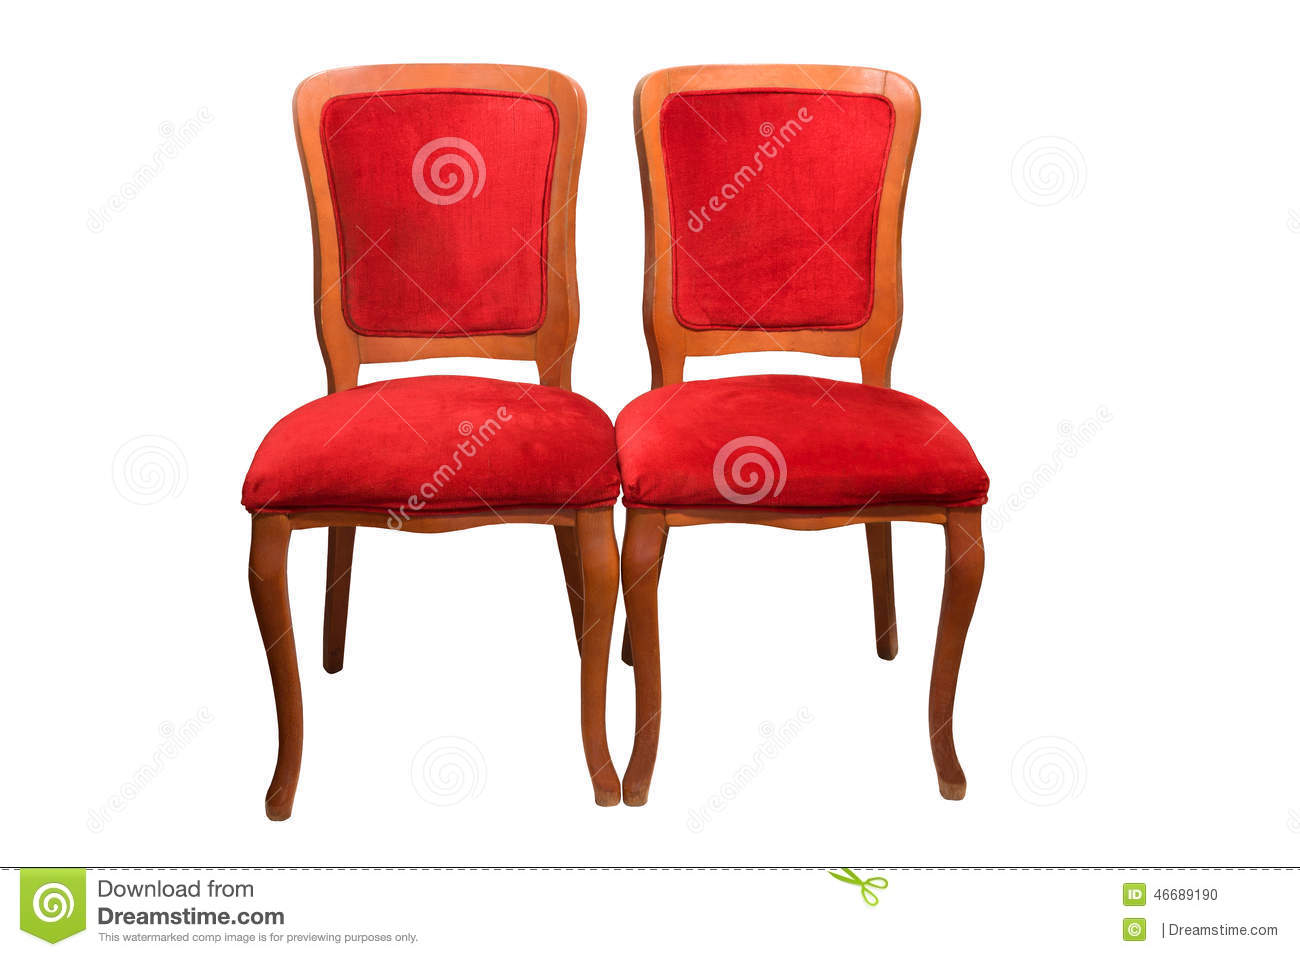 Antique theater chairs - Antique Theater Chairs Stock Photo